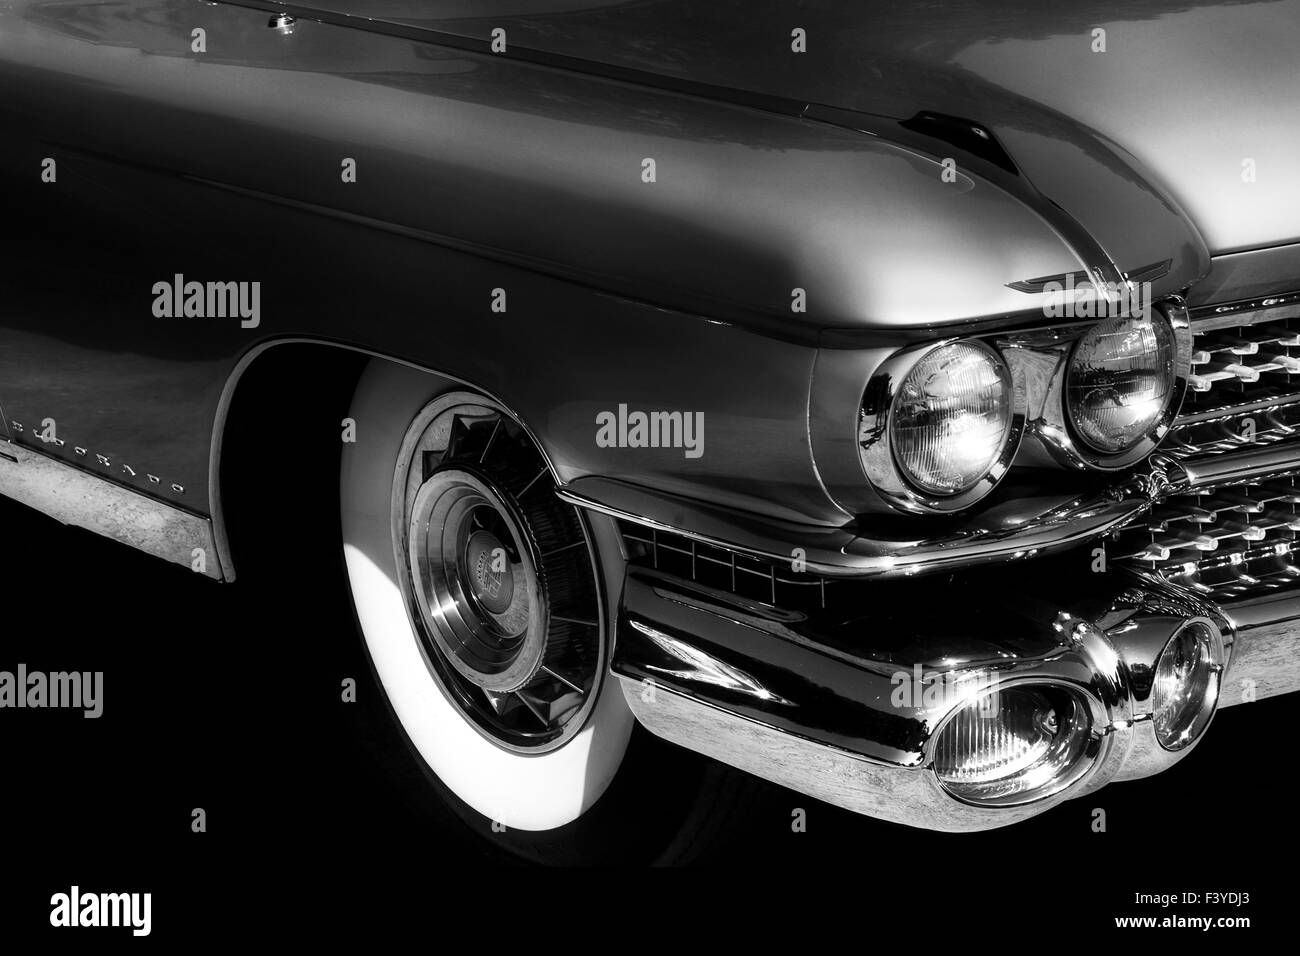 us car Stock Photo